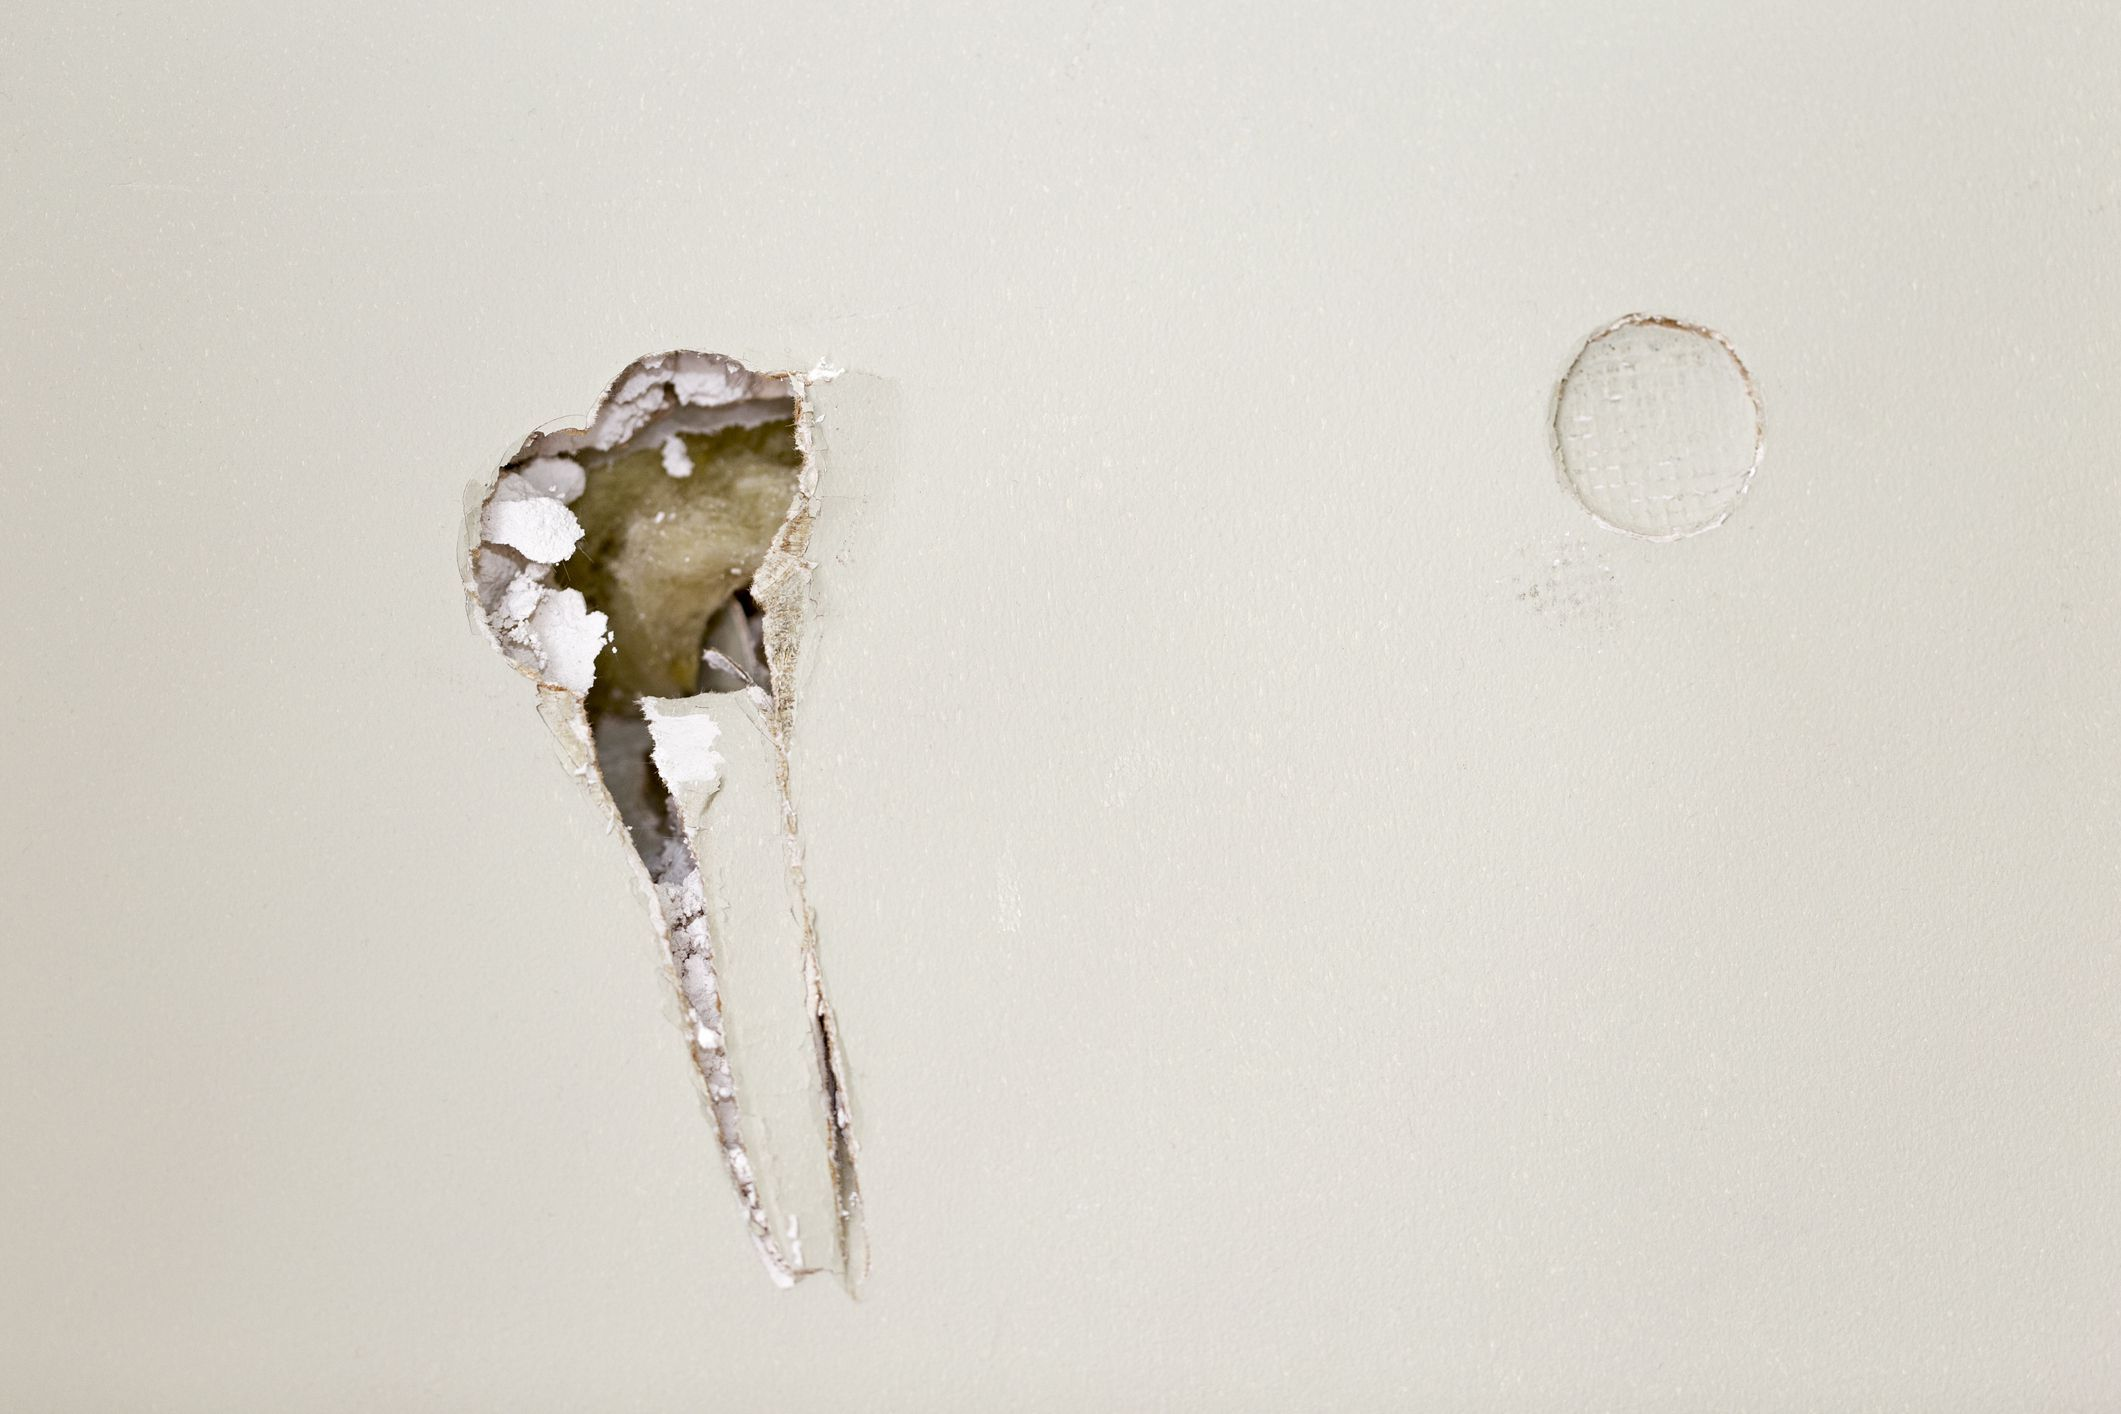 Learn How to Fix Small Holes in Drywall  Fixing drywall holes